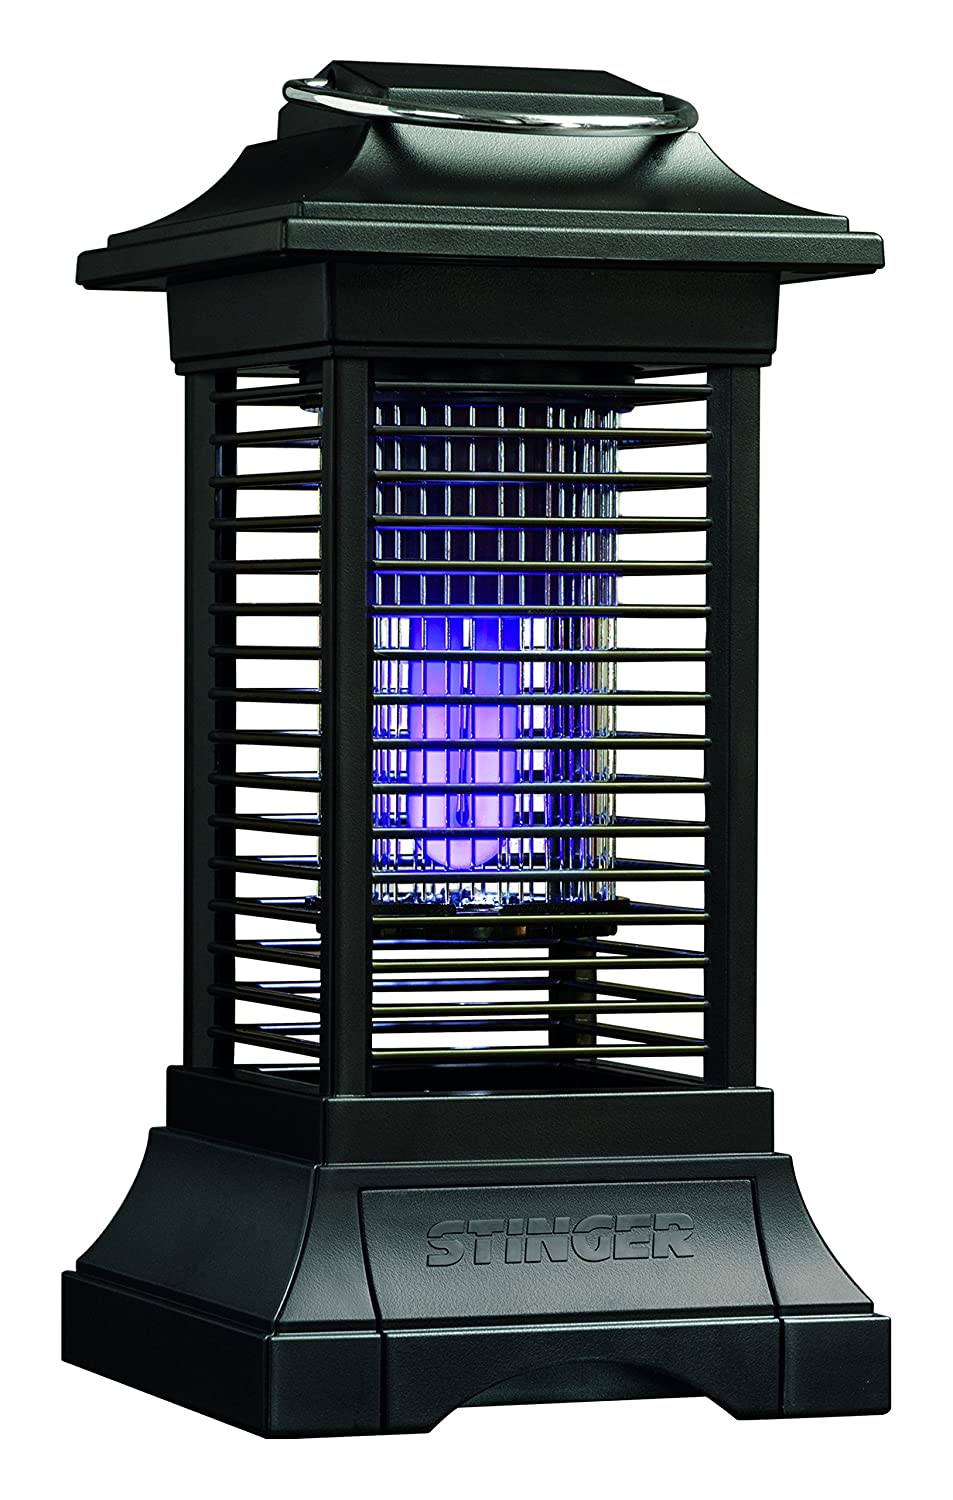 Best Bug Zapper Stinger Cordless Rechargeable Insect Zapper